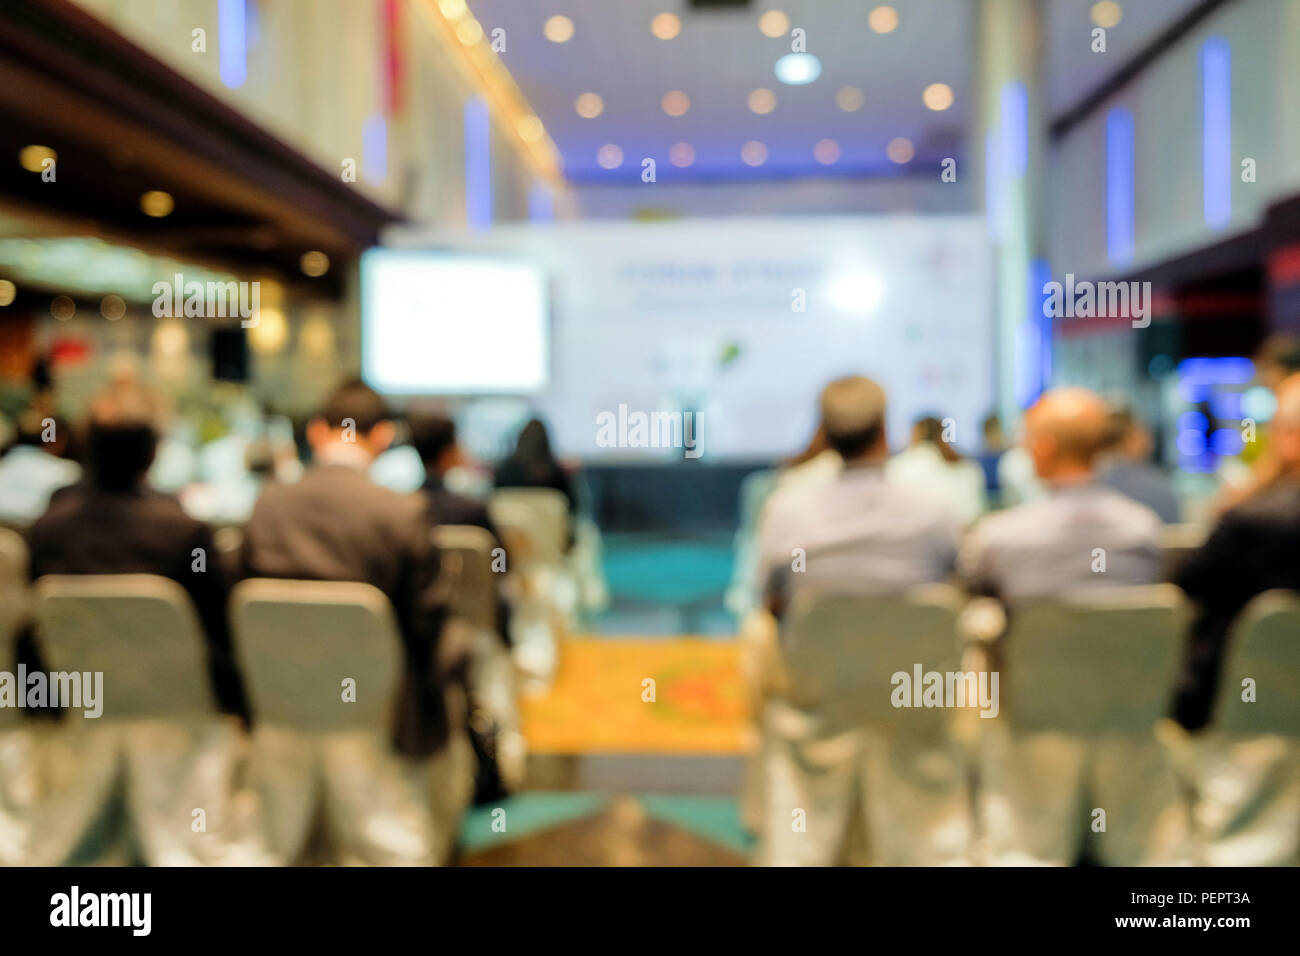 Blurred view from behind the audience waiting to hear from the speaker in the seminar in the building on blurred background. - Stock Image